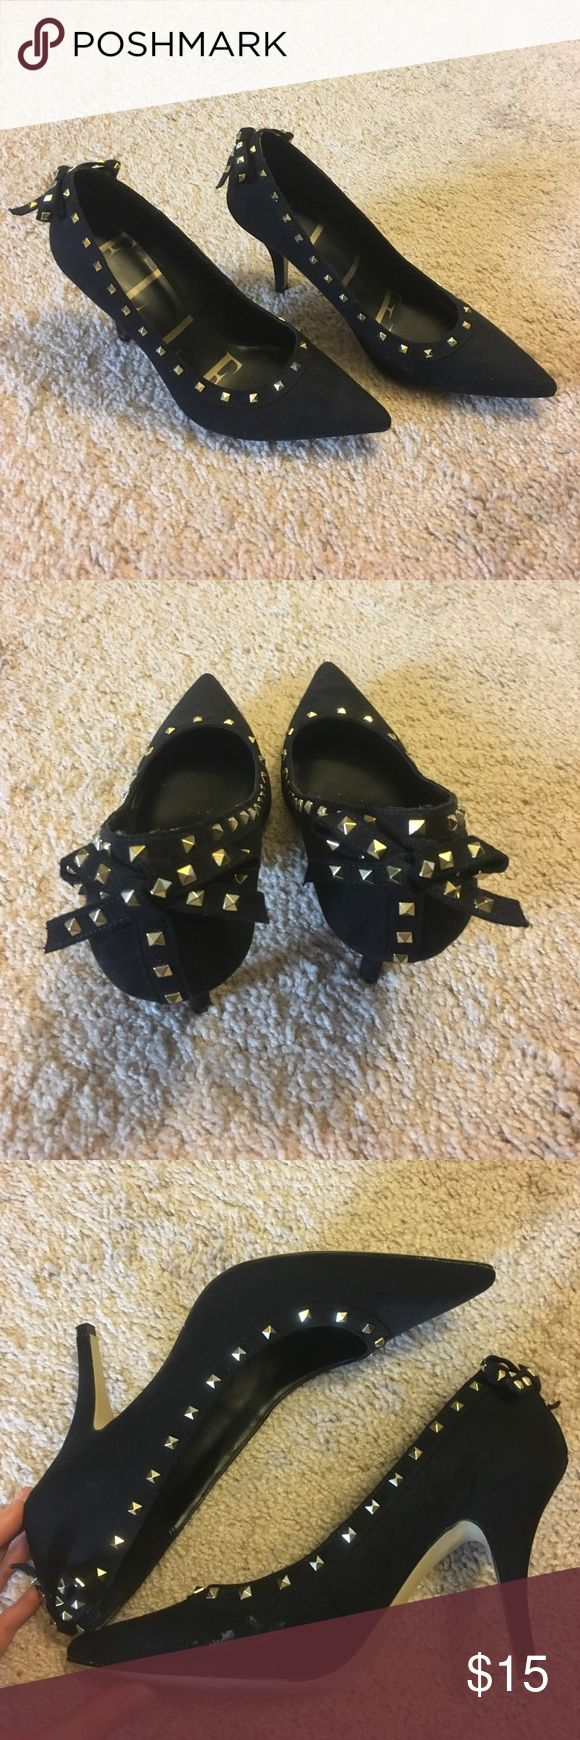 Women's Elle Black with Gold Studs Heels Excellent condition. Worn a few times. One scuff as shown in pictures, other wise perfect condition. Black suede with gold studs. Bow accent on back of shoe. 3 inch heel. Elle Shoes Heels